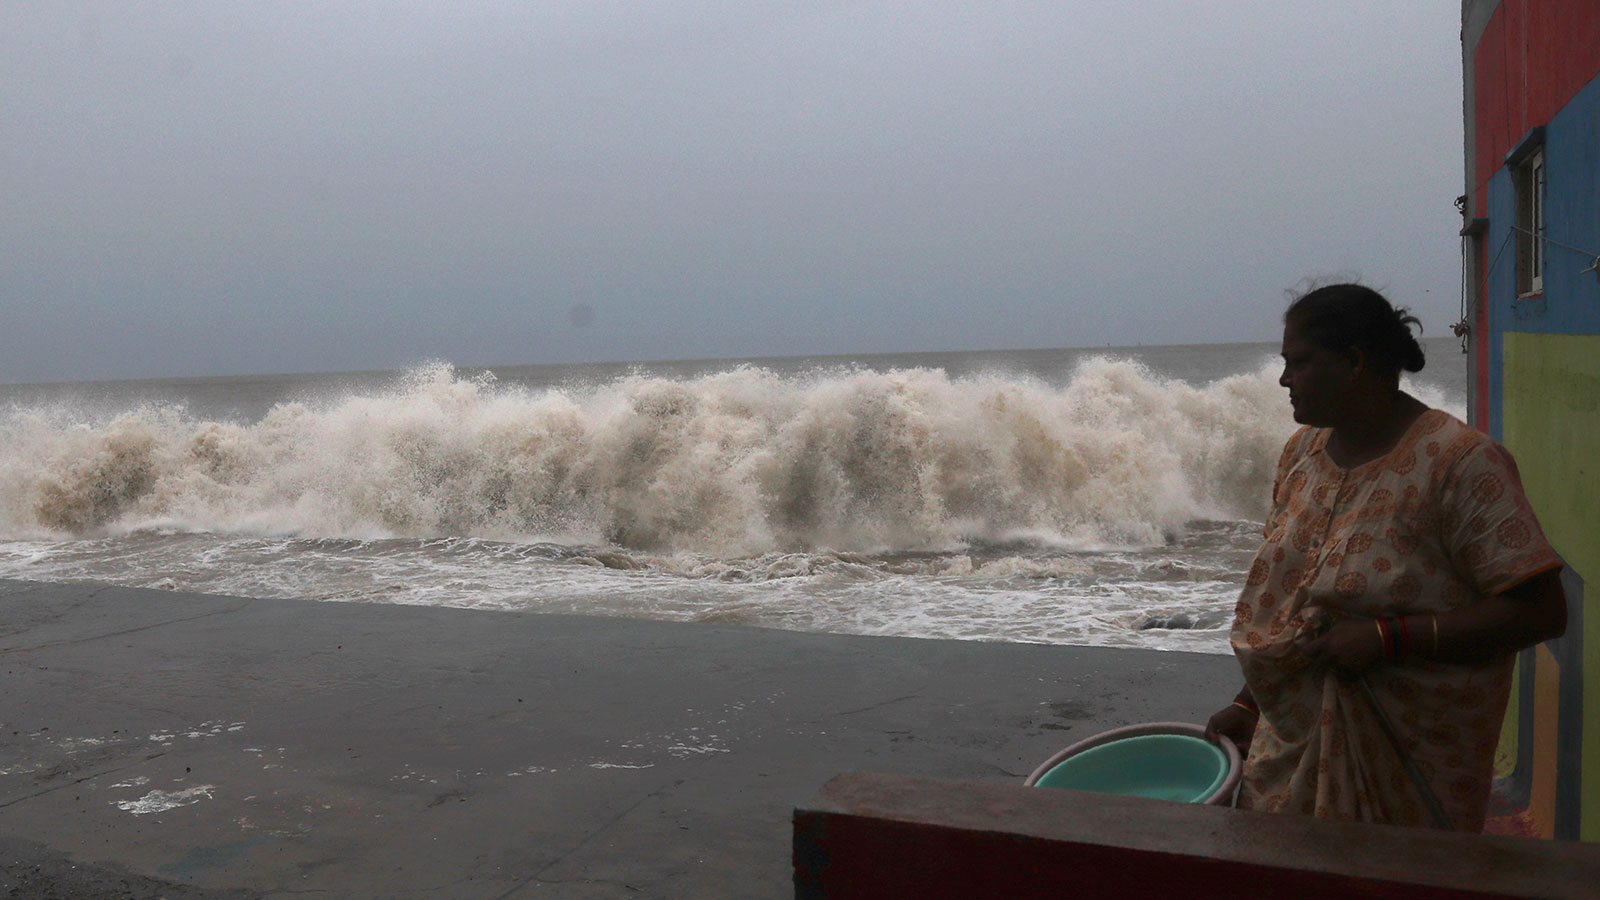 A woman watches waves splash on shores of the Arabian Sea in Mumbai, India on June 3.